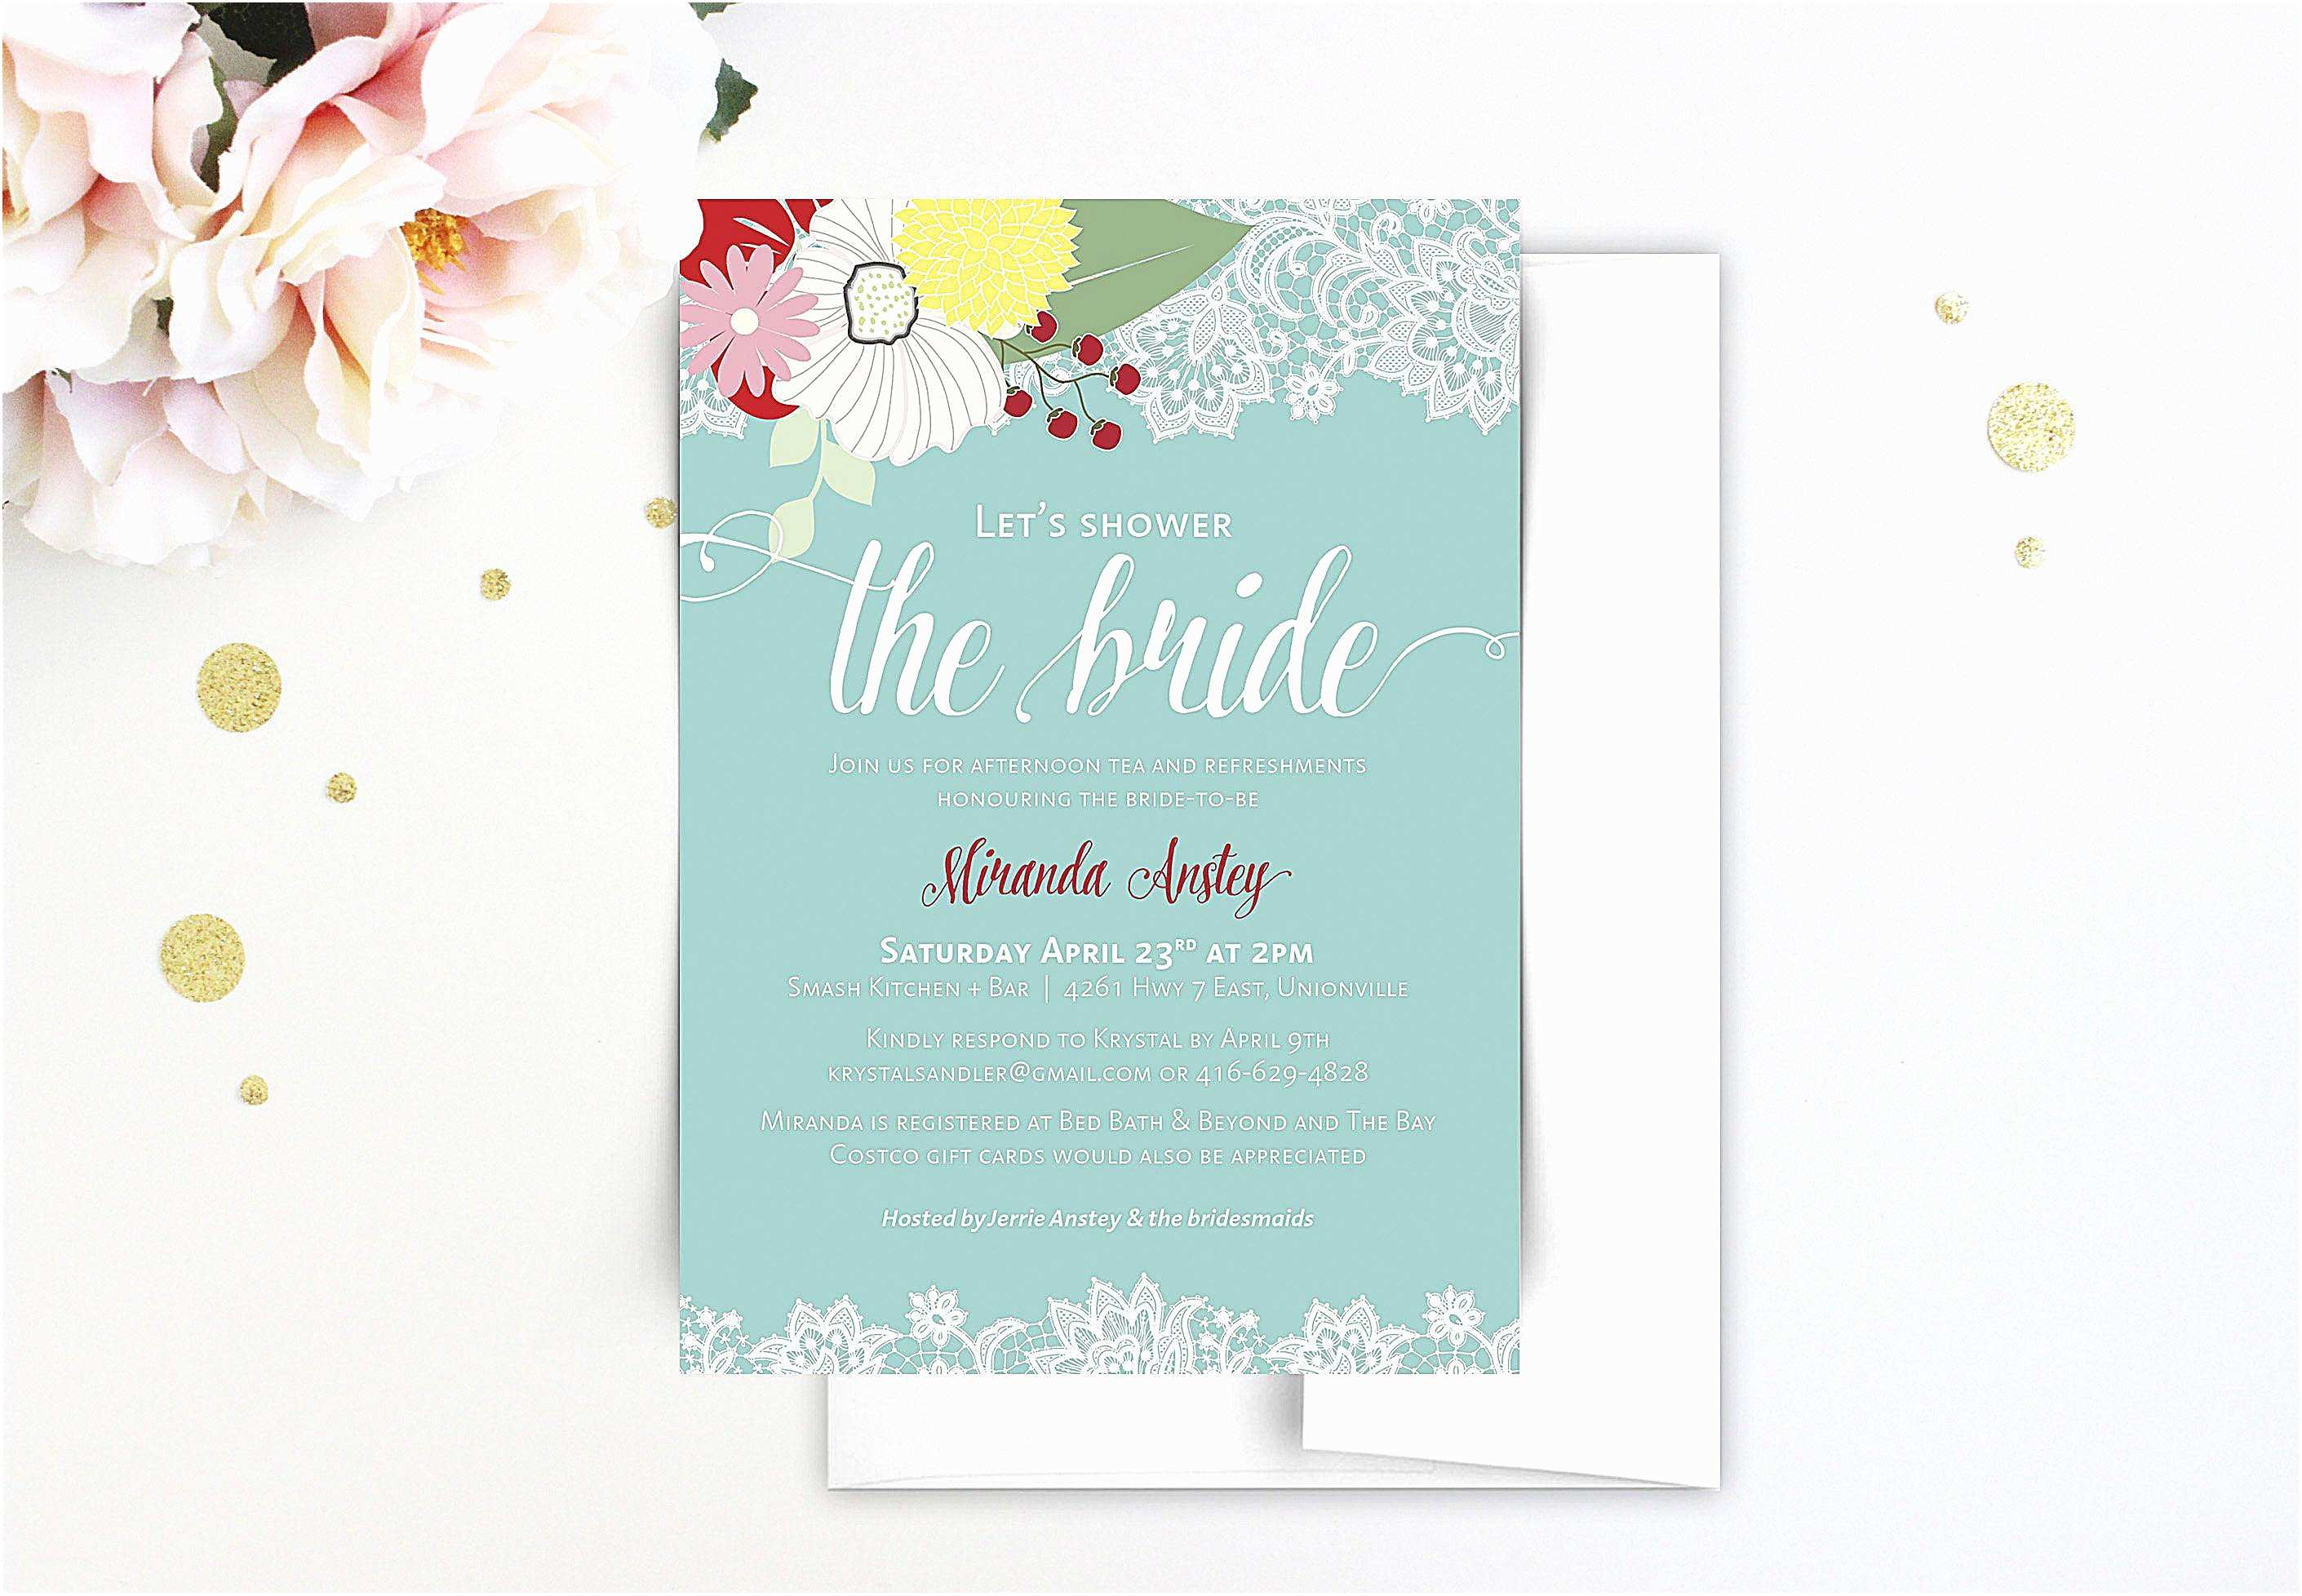 bed bath and beyond invitations imagine